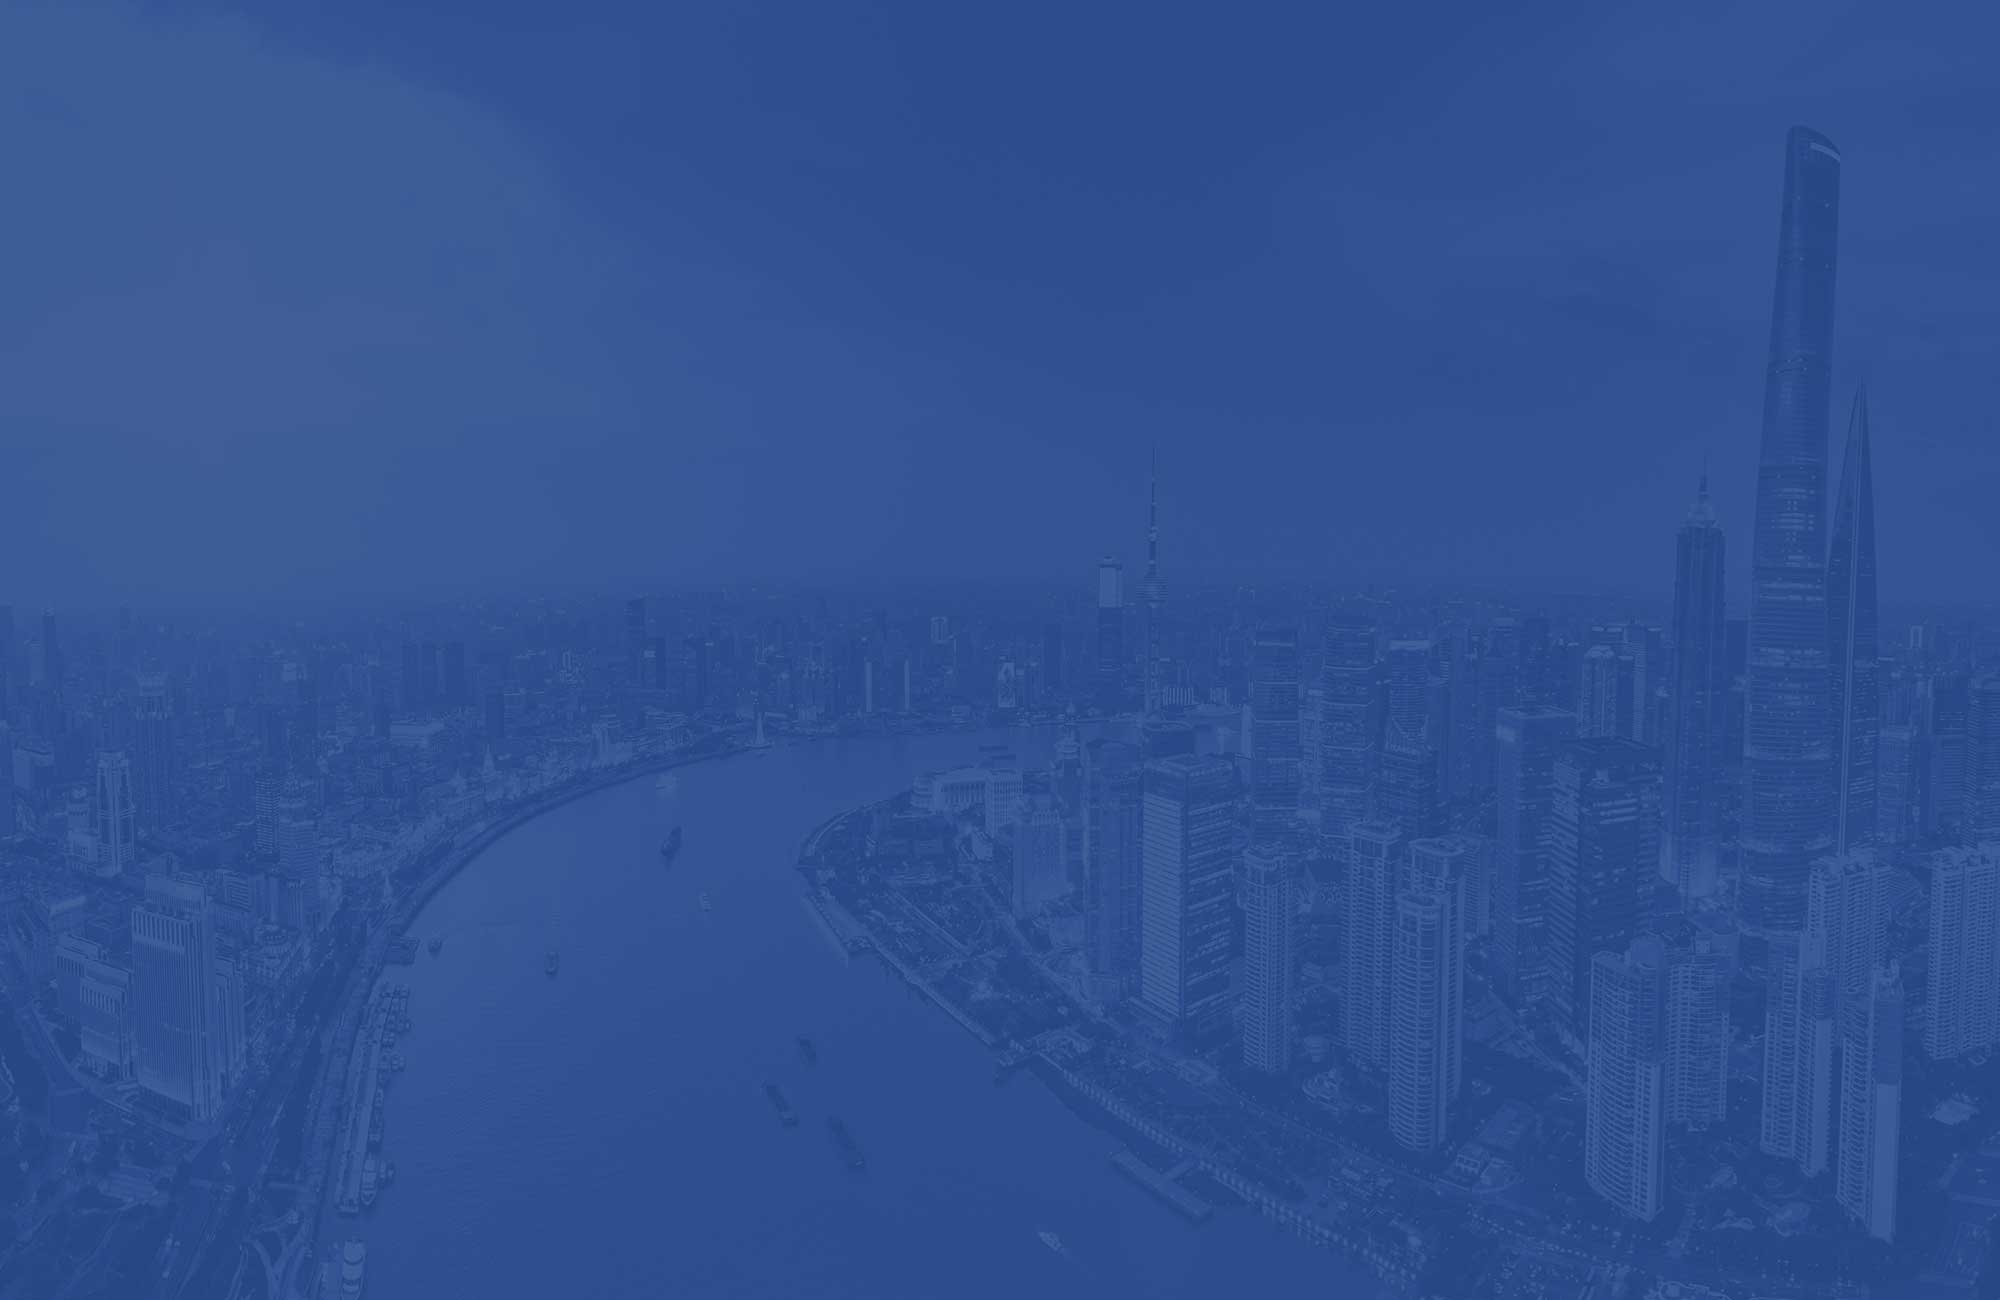 Shanghai skyline: Shanghai Tower